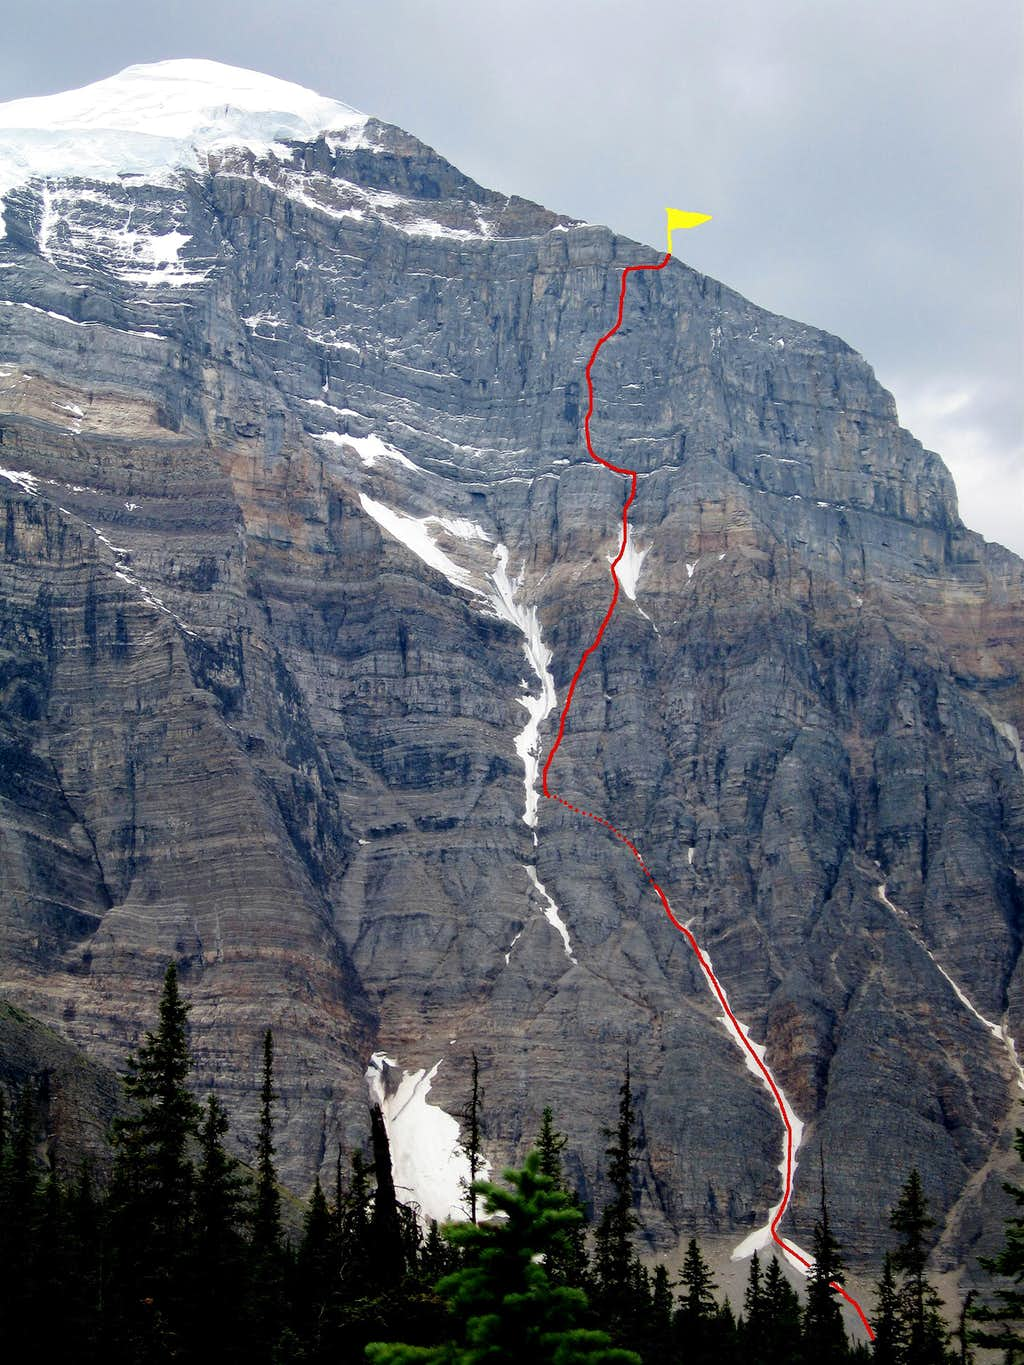 Greenwood/Locke,  North Face of Mount Temple